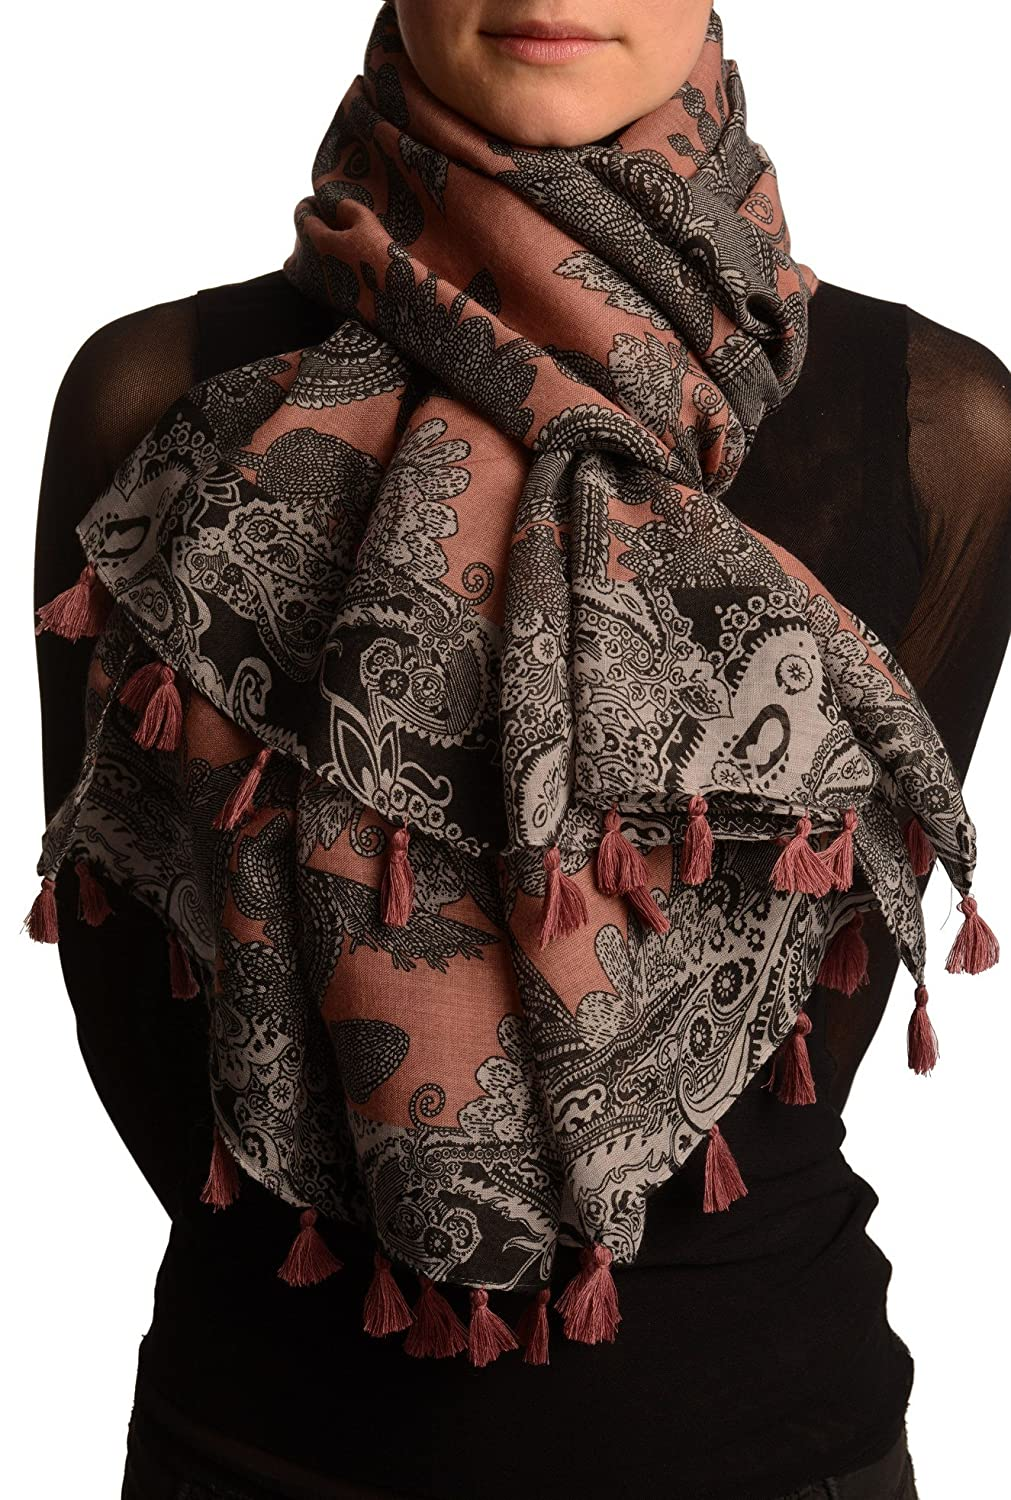 Grey & Black Paisley On Pink Scarf With Tassels - Scarf